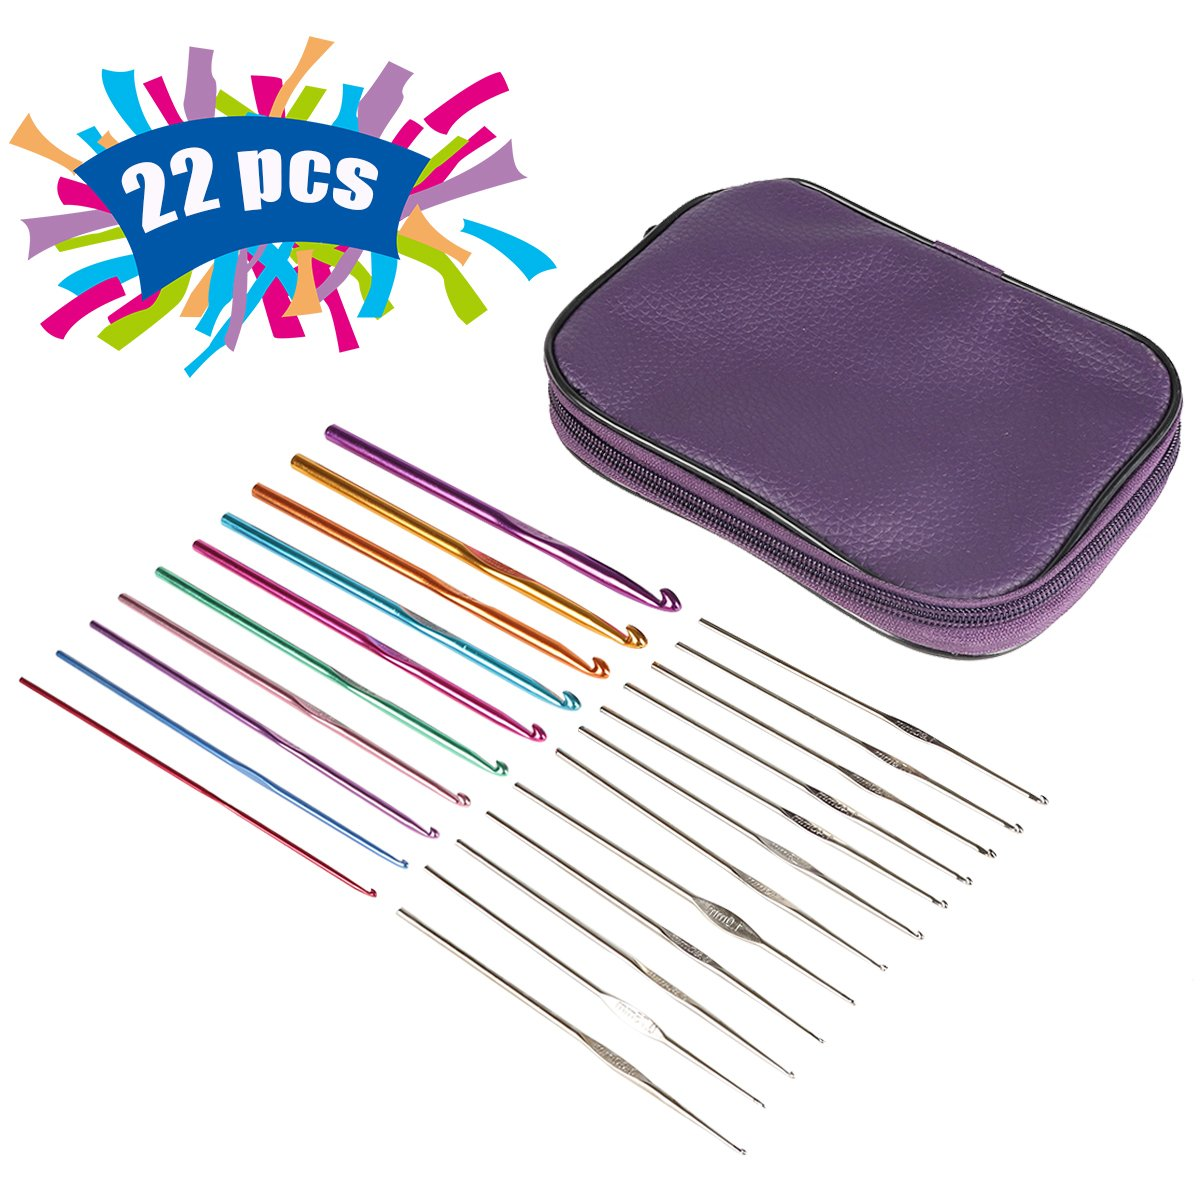 Knitting Needles Set Kits, Pococina 22 PCS Aluminium Crochet Hooks with Portable Compact Case … (Purple) Meishengfa PO-001